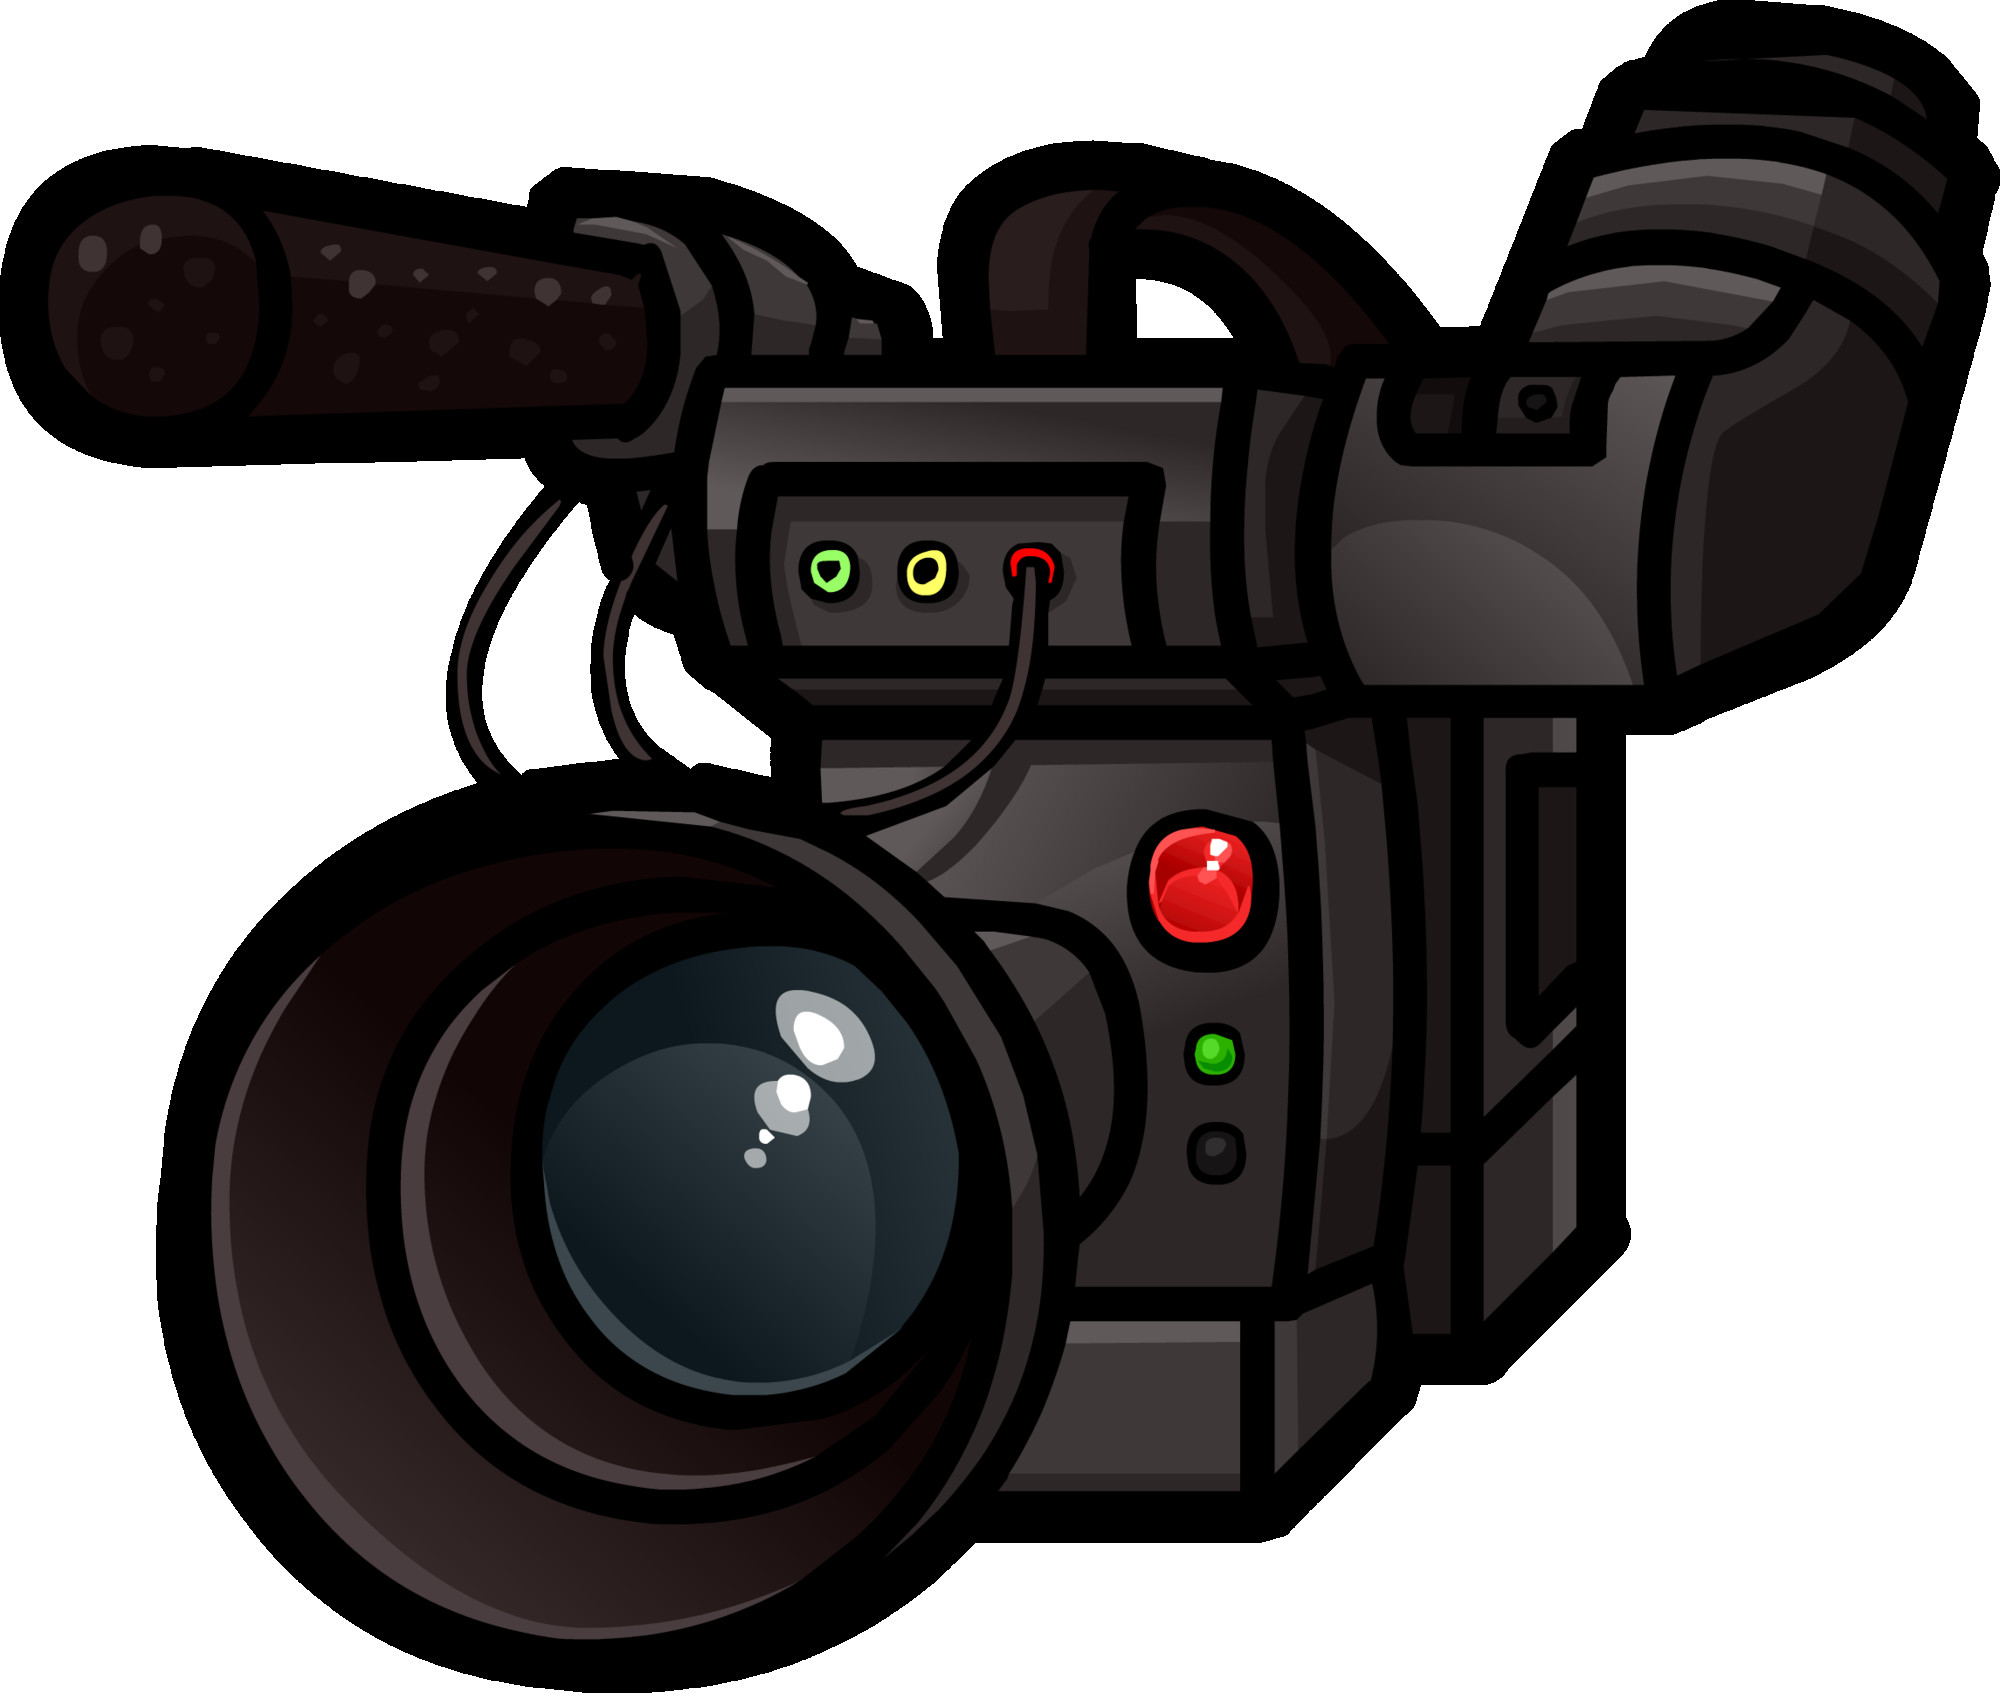 Camera clipart video camera. Png clip art net